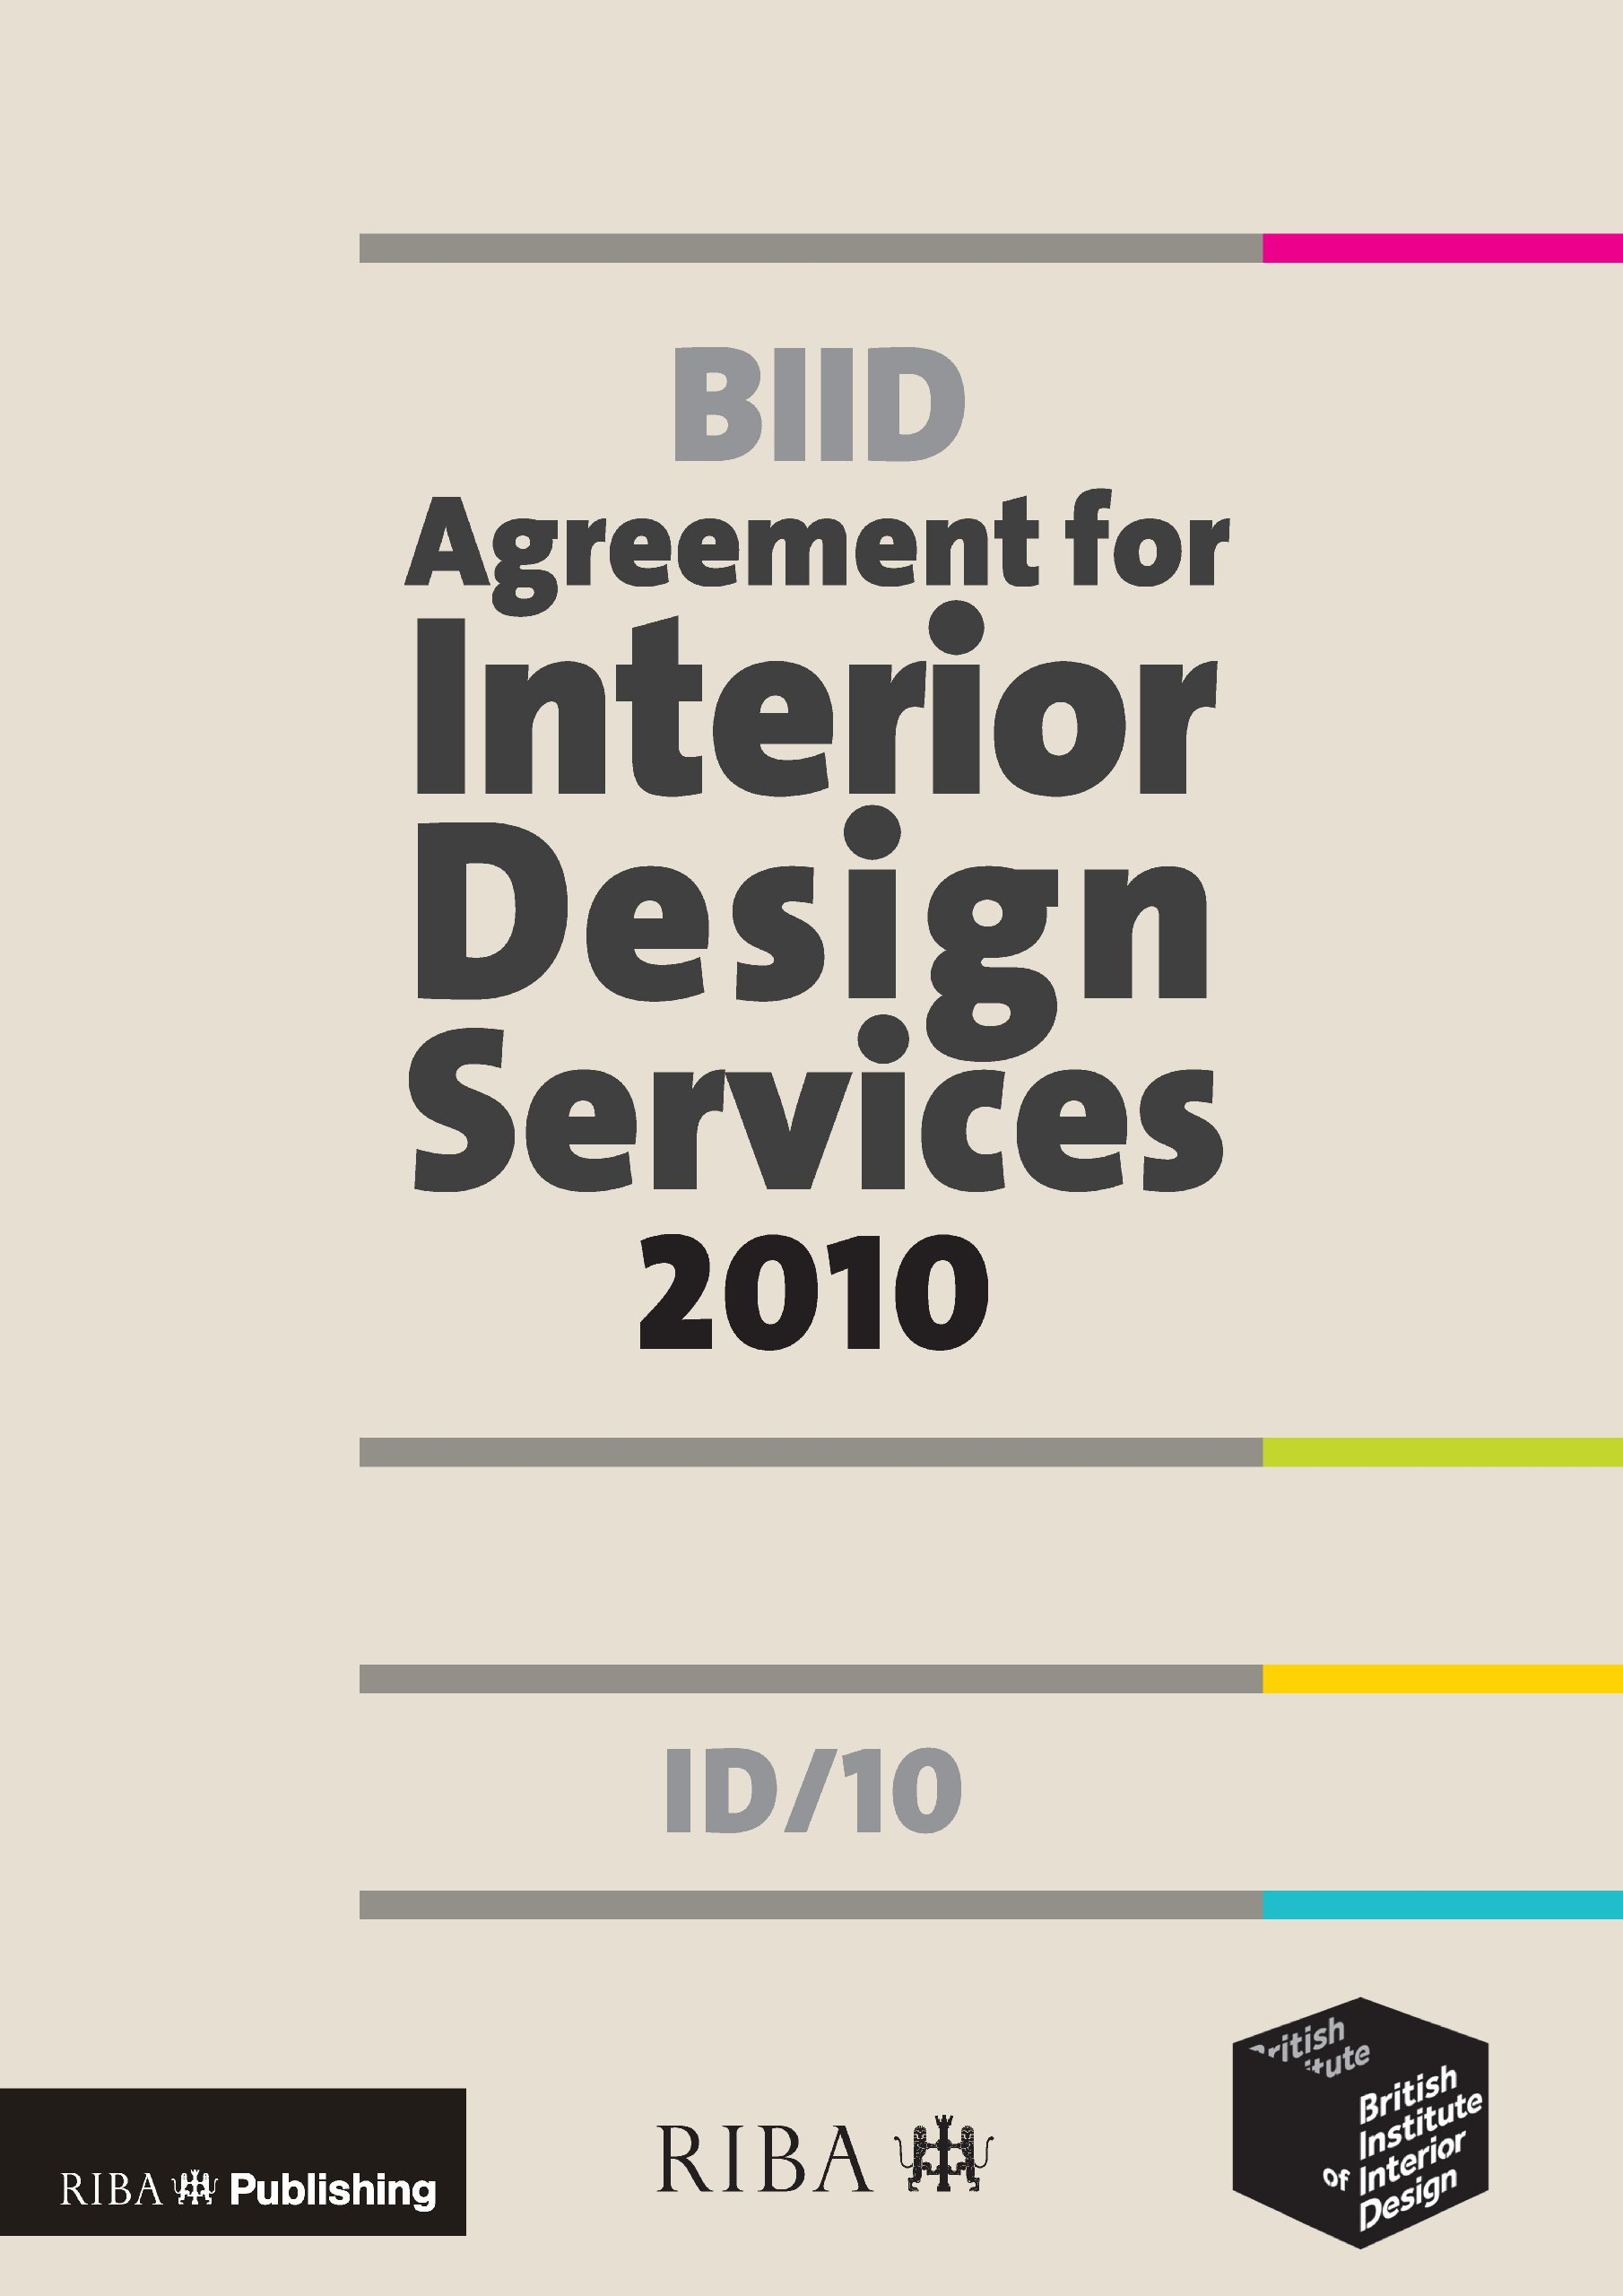 Biid Agreement For Interior Design Services 2010 Id 10